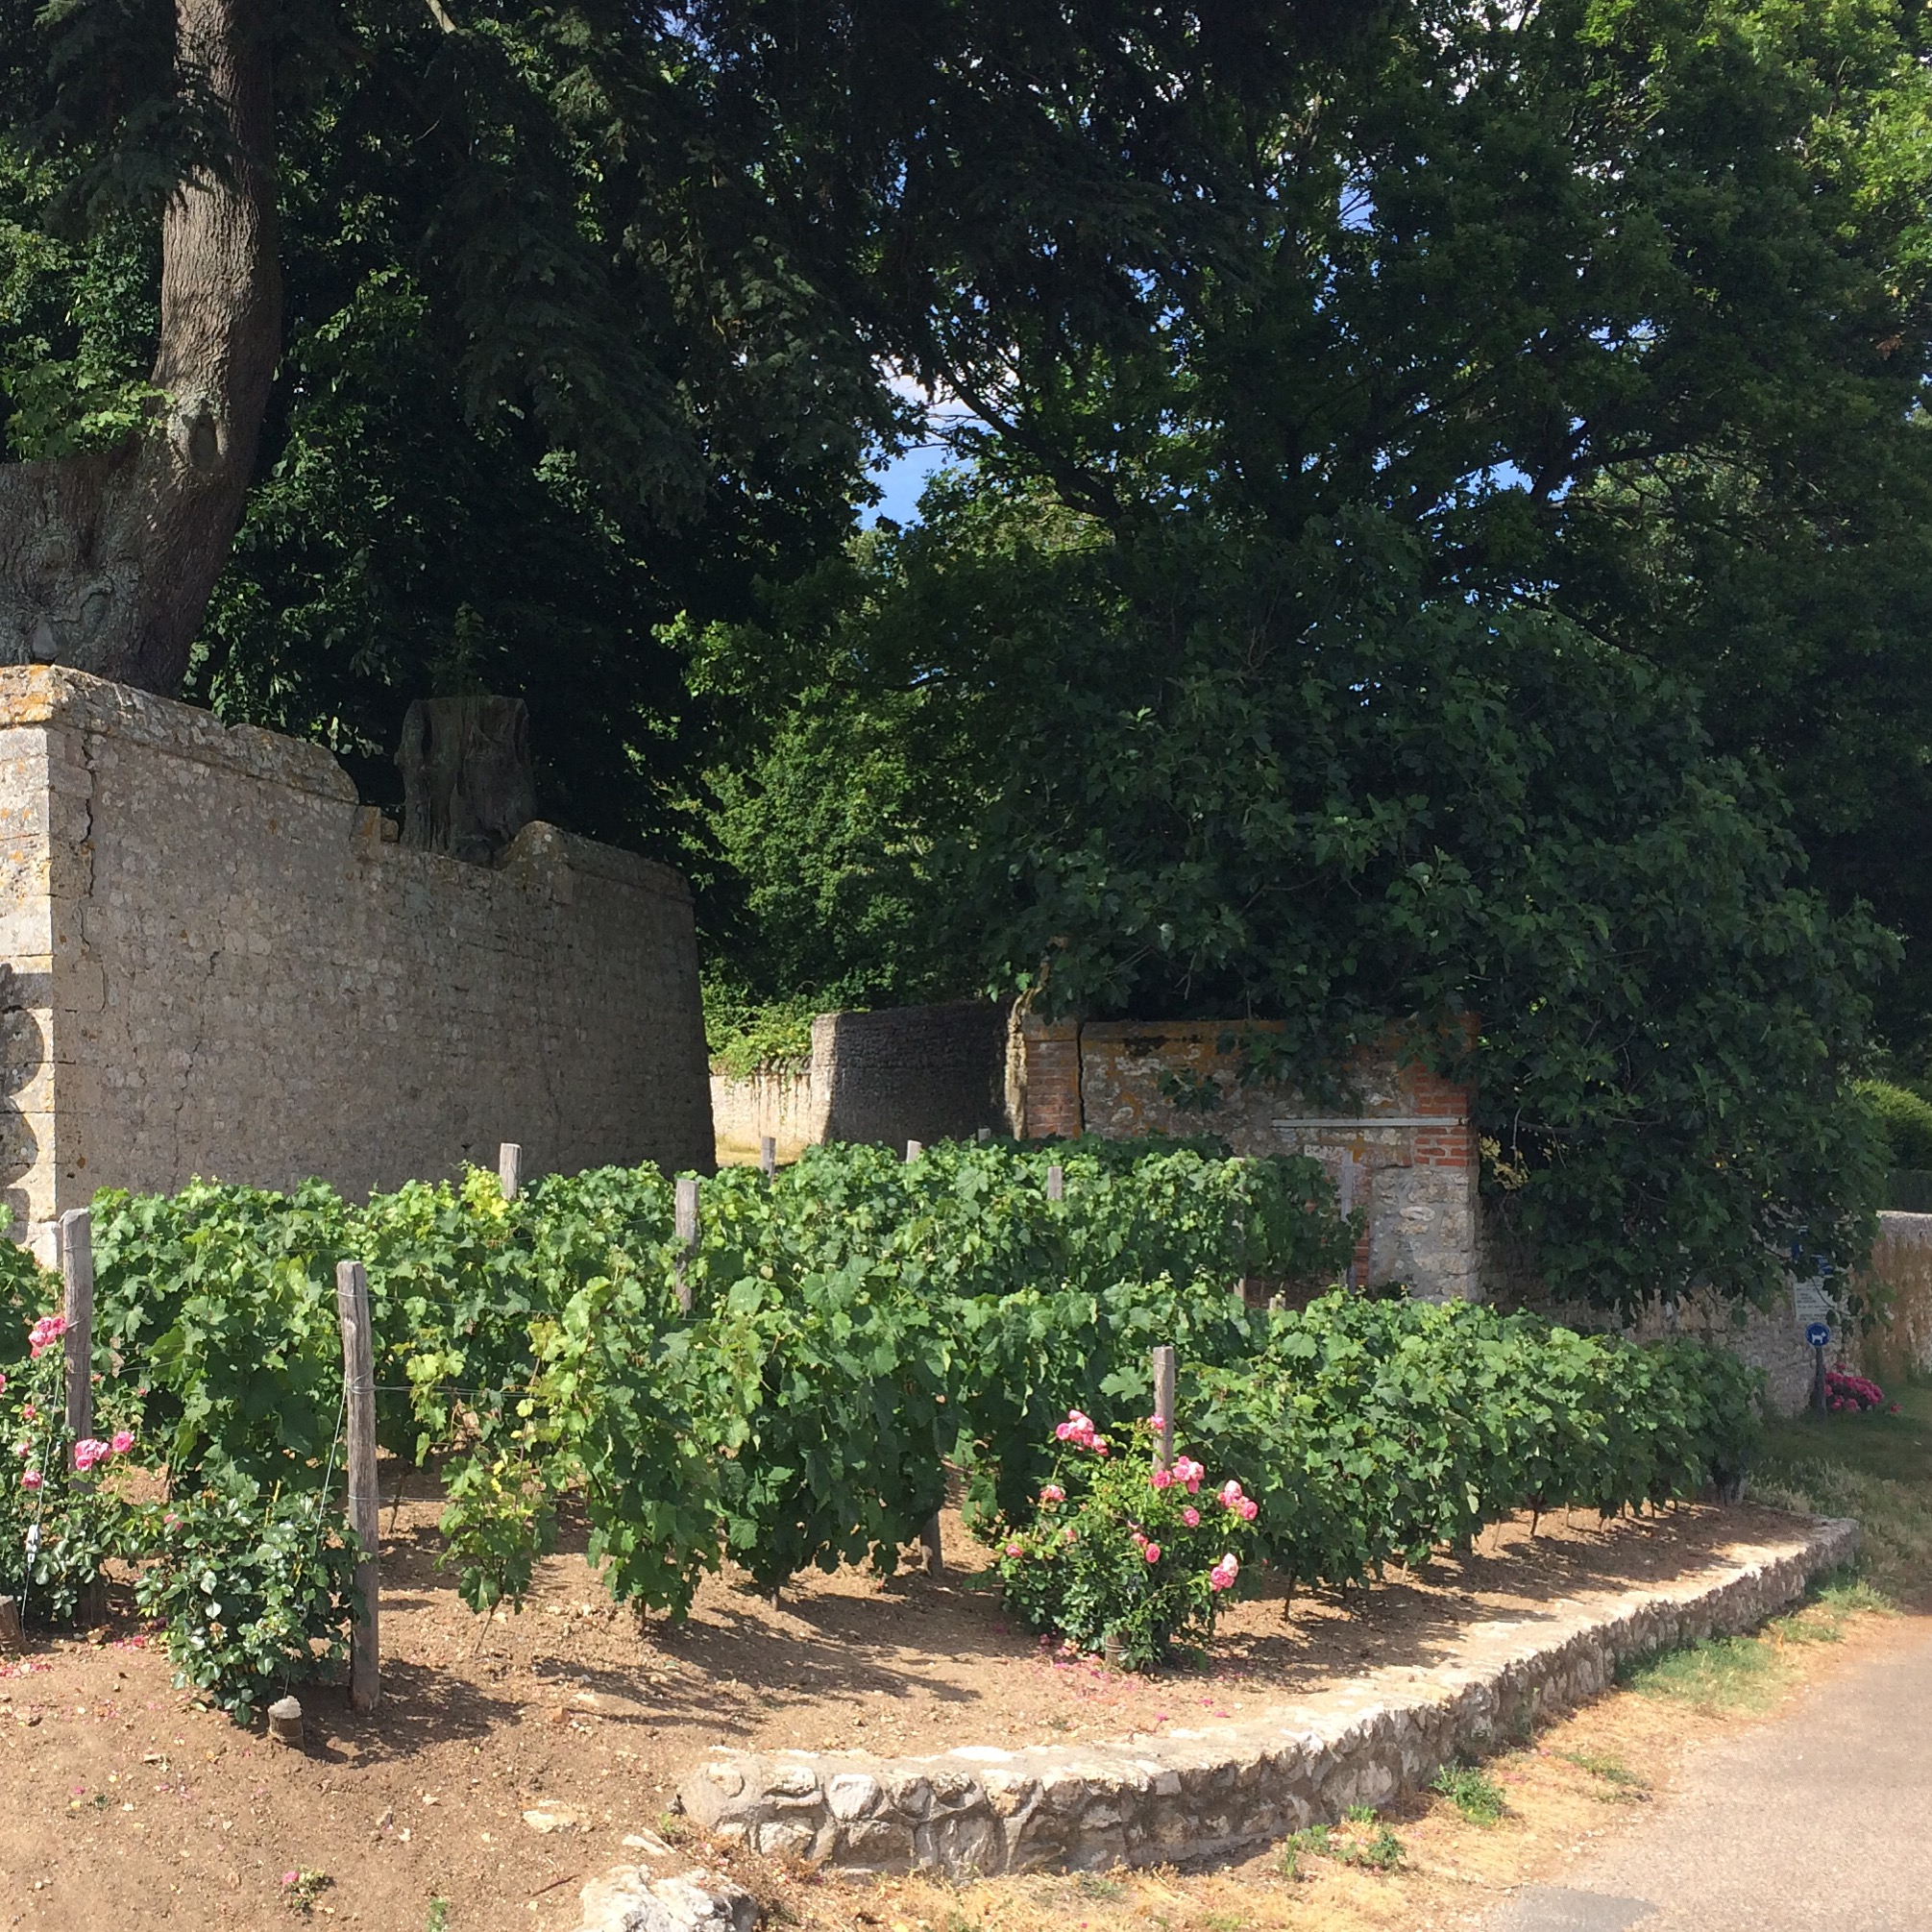 This is the little vineyard on the bike path from Blois to Cour-sur-Loire that I love